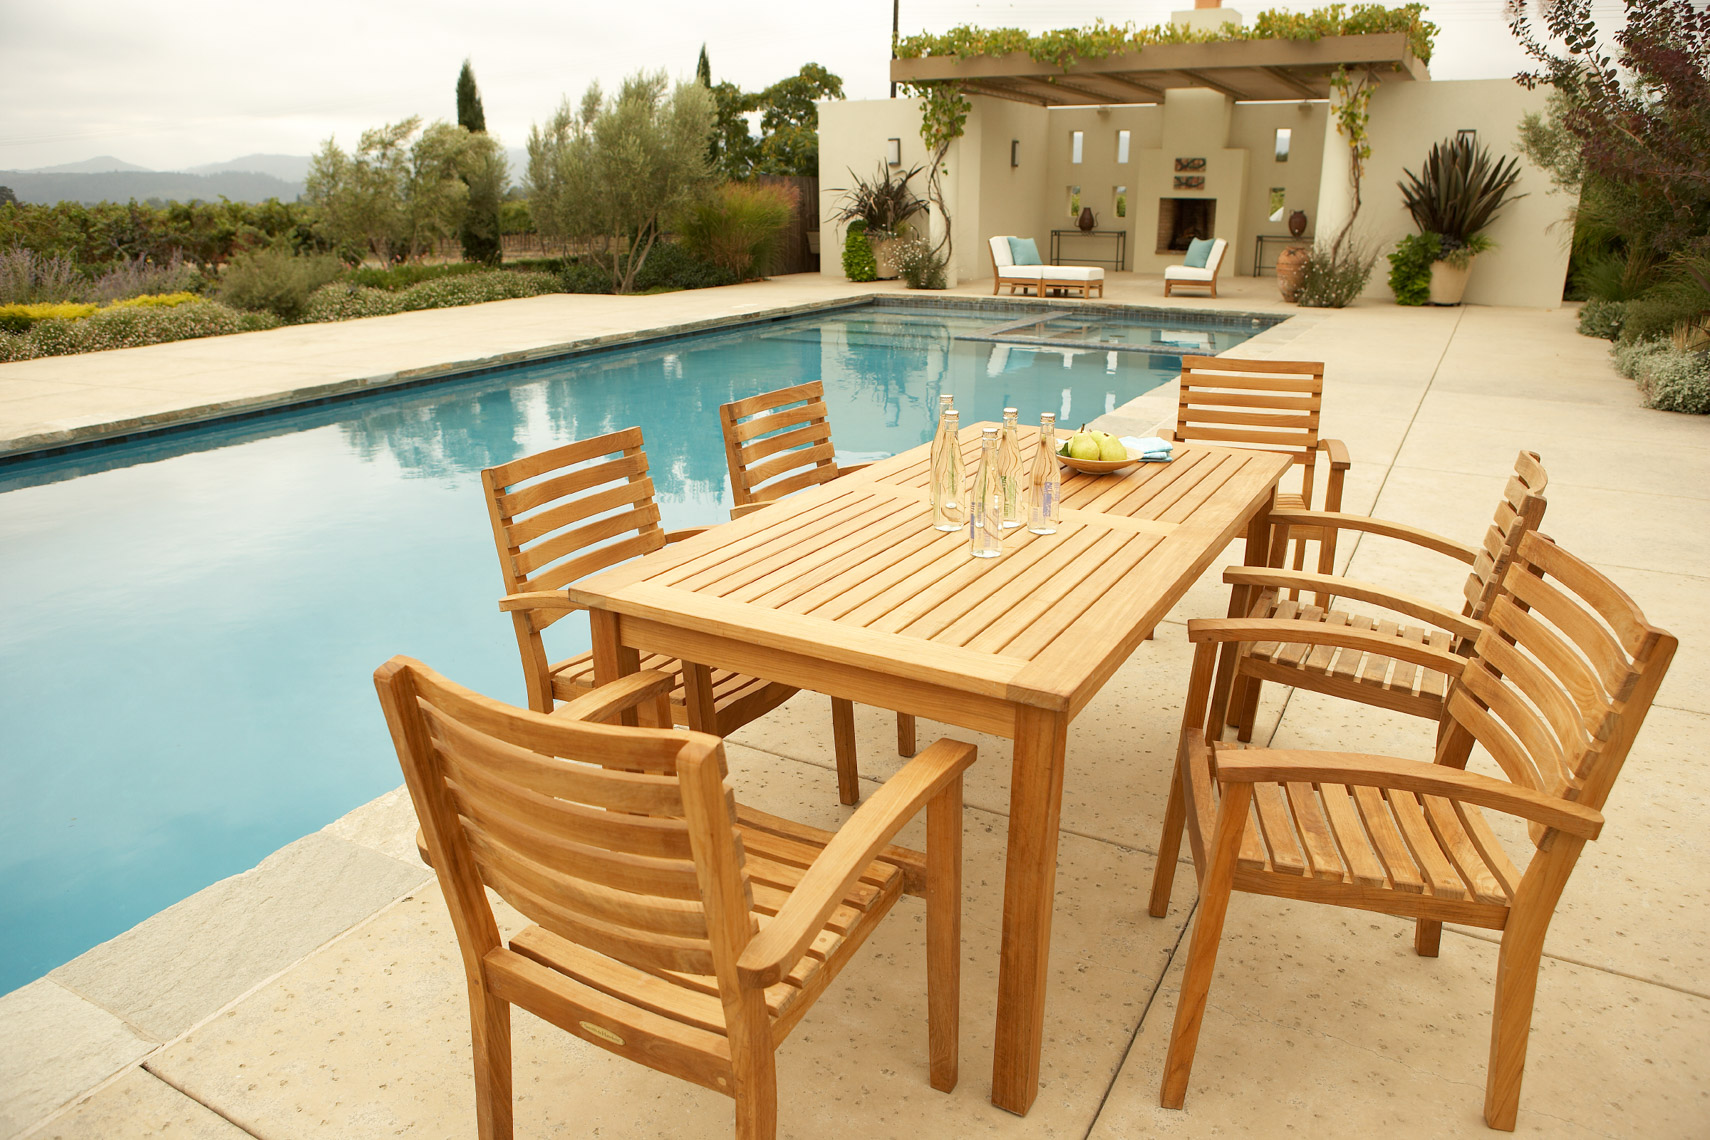 Teak dining collection on tile patio by pool